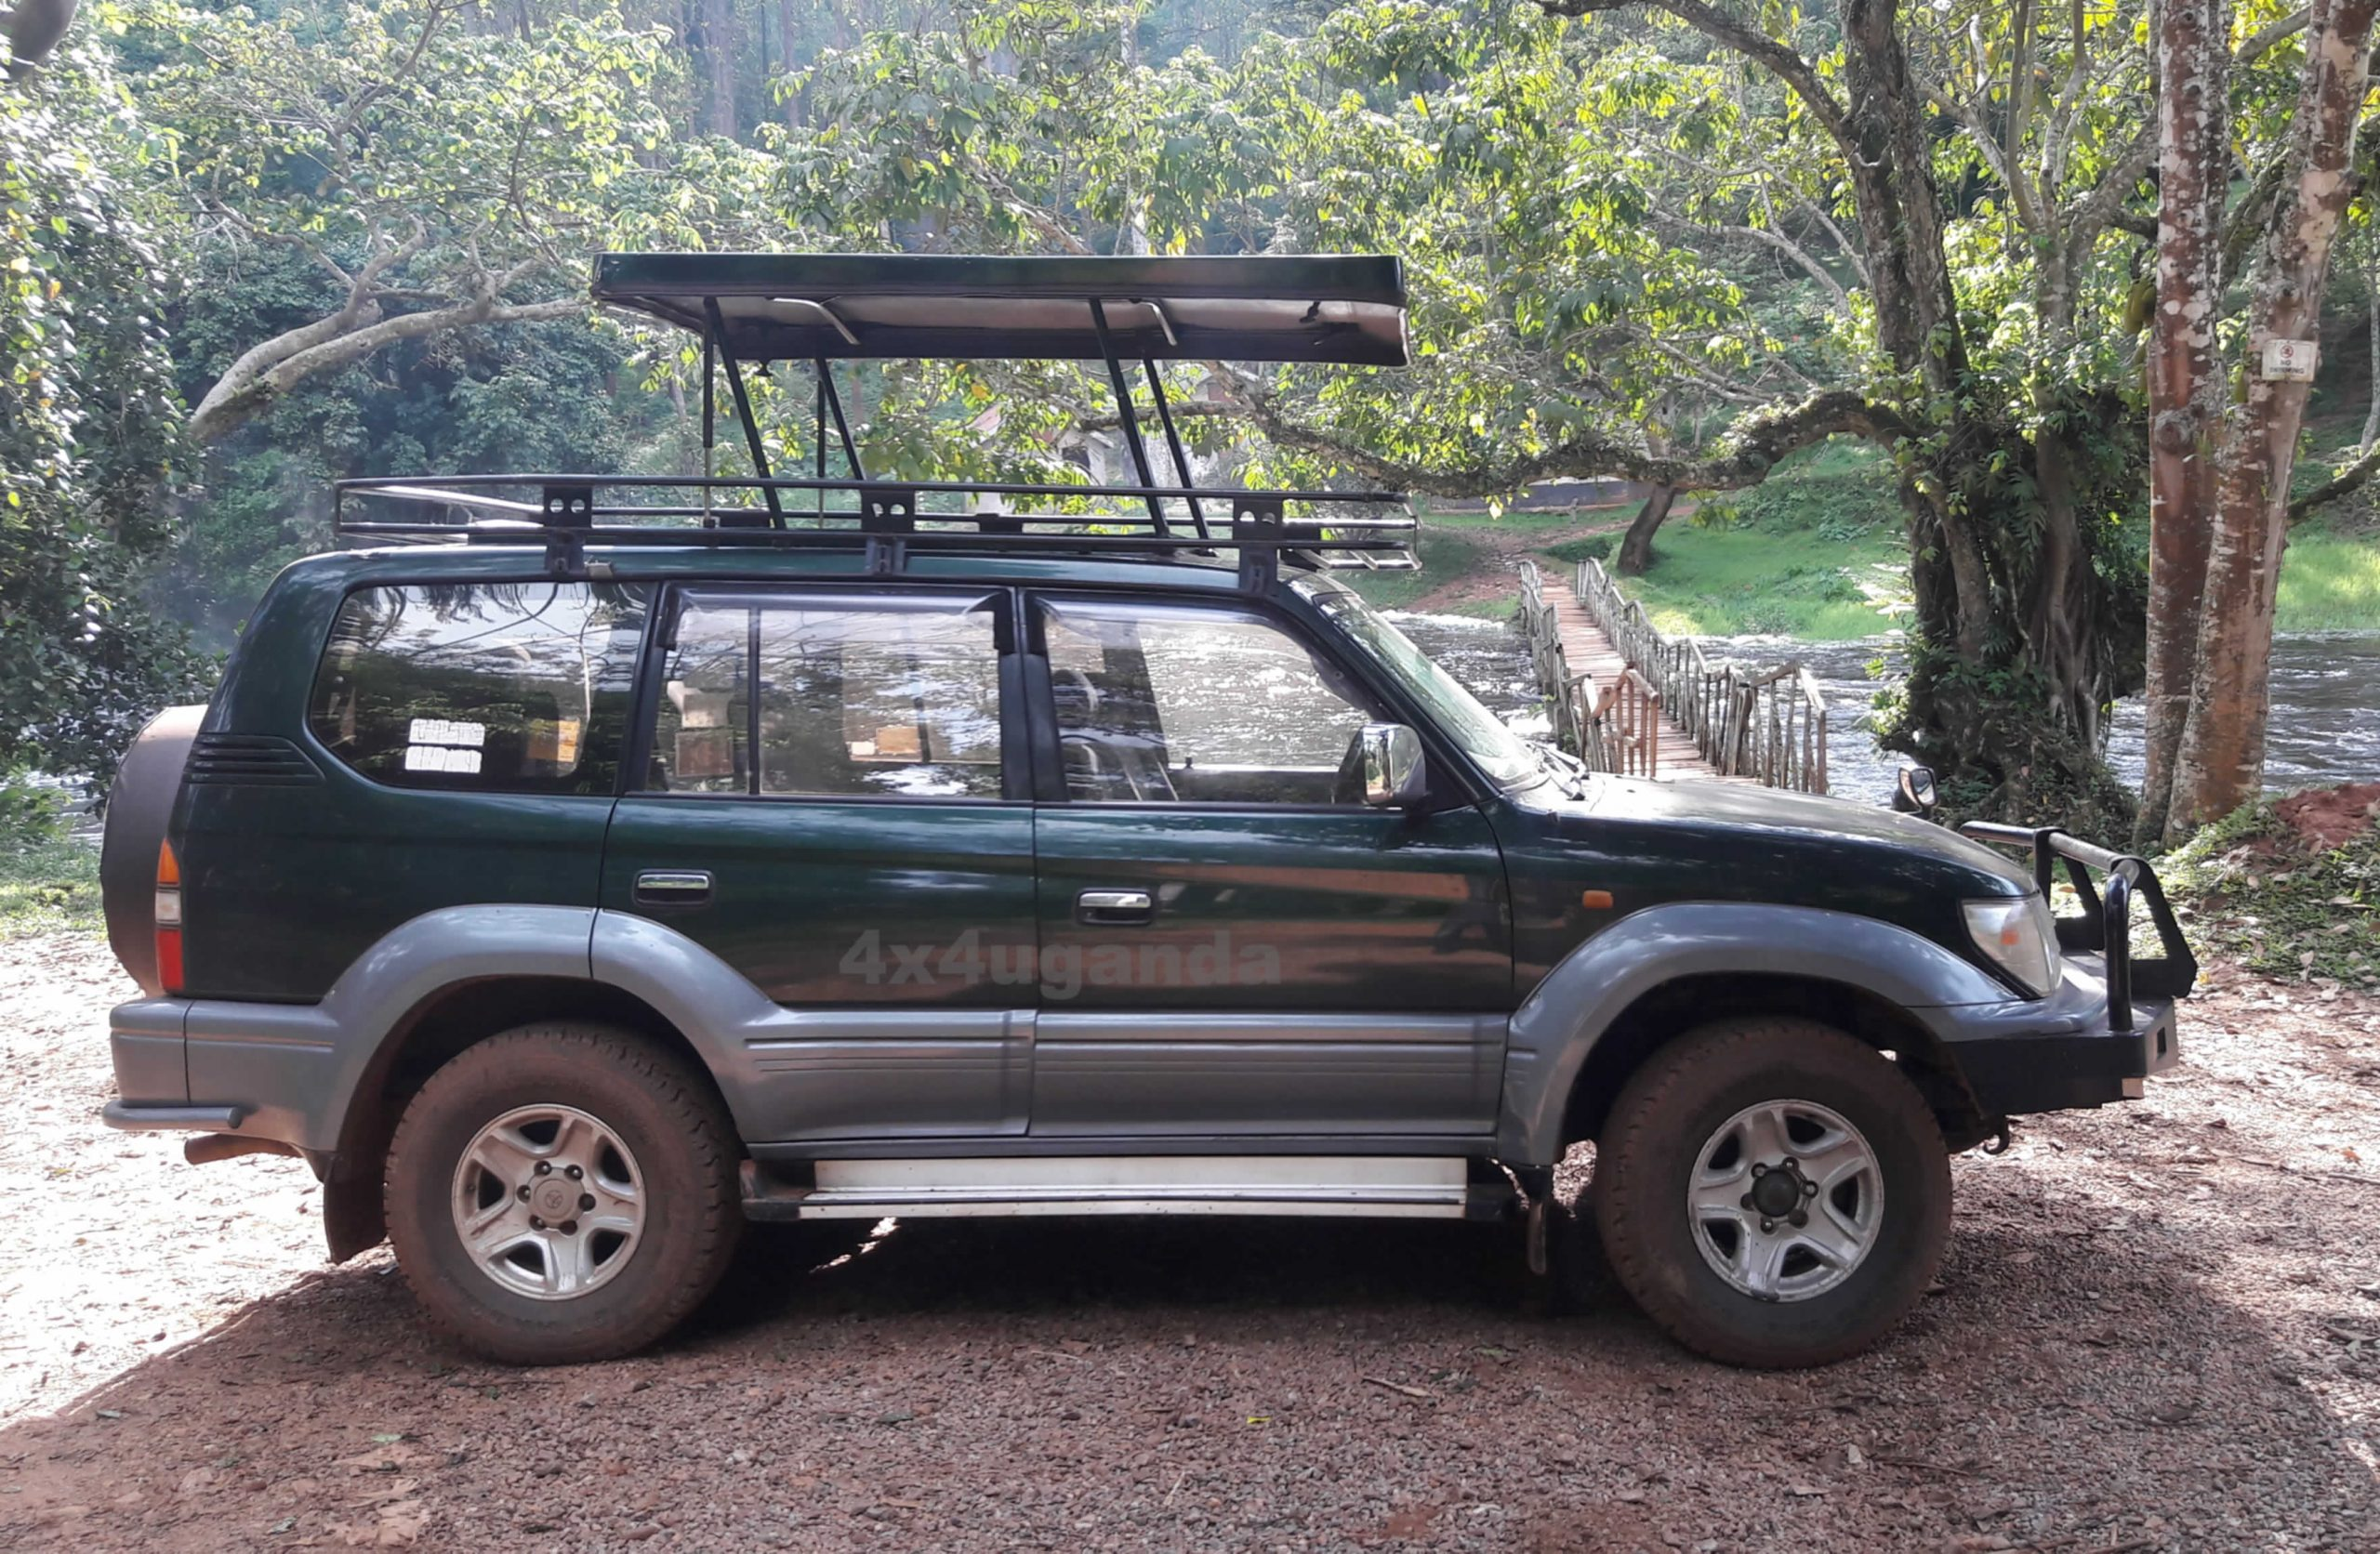 Land Cruiser Prado with Safari Roof